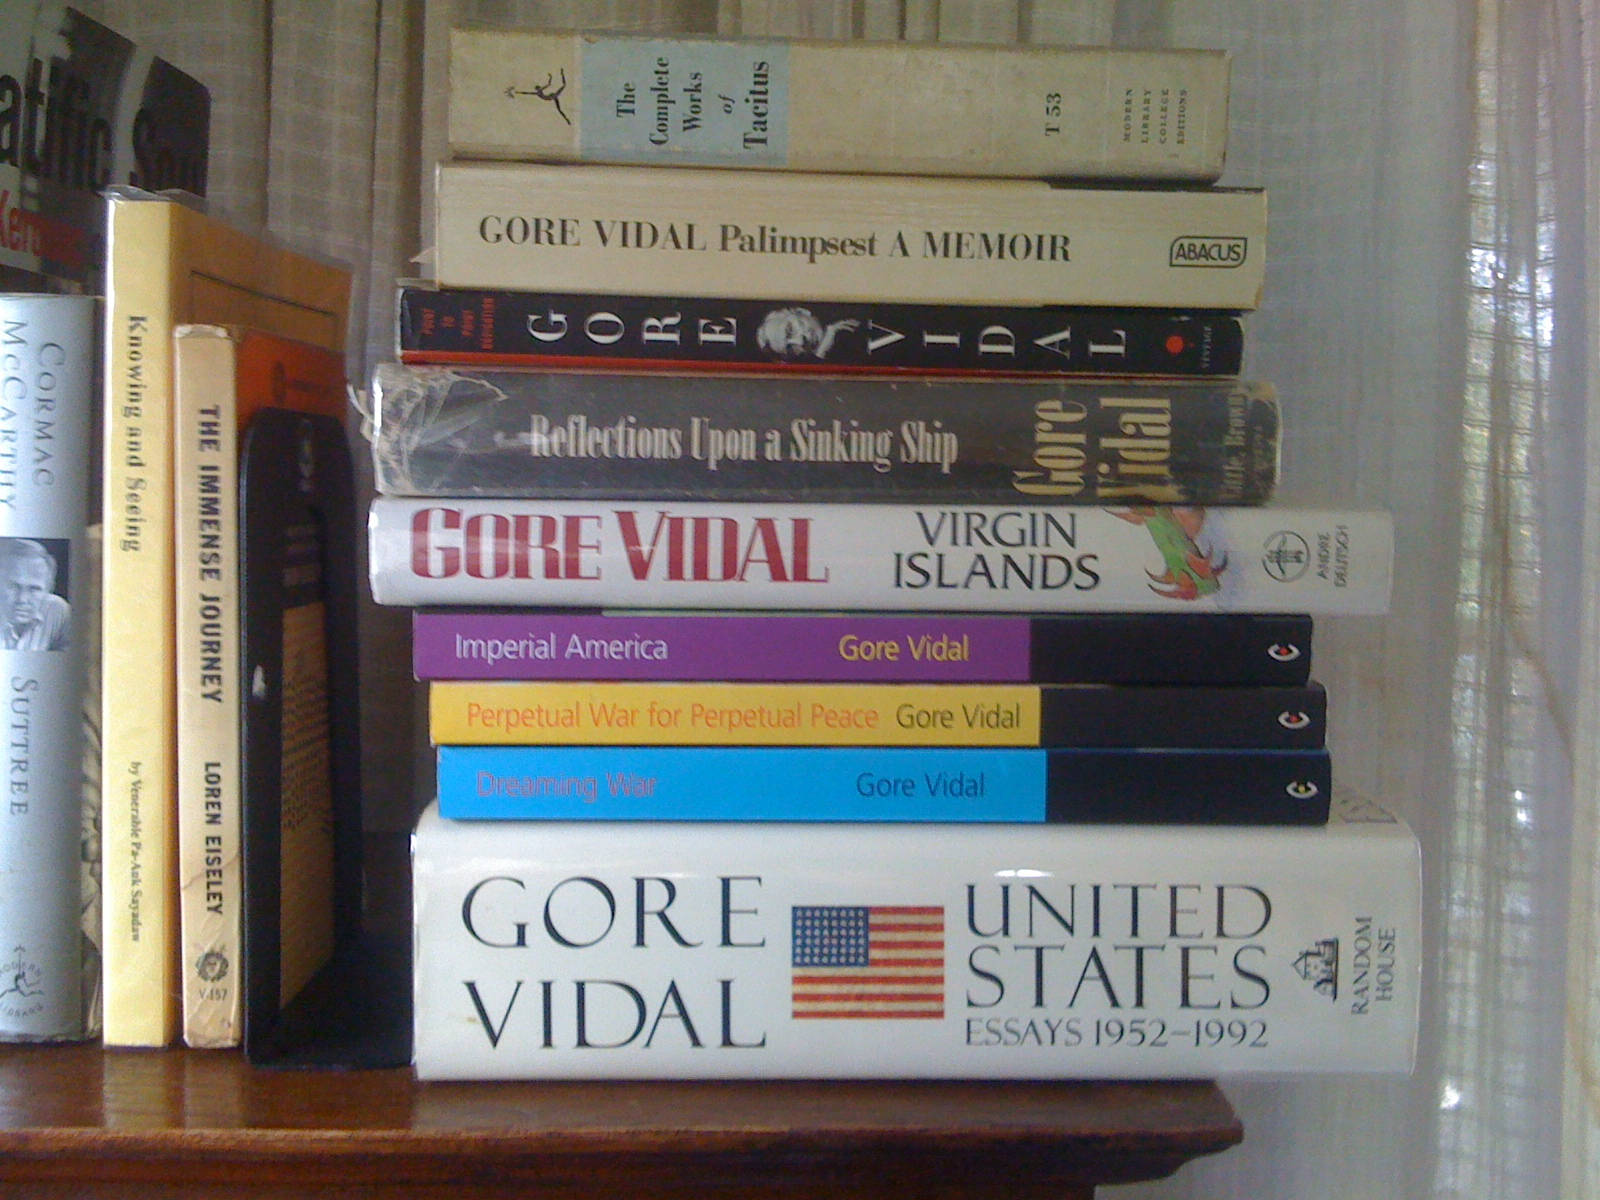 essays by gore vidal Item Preview